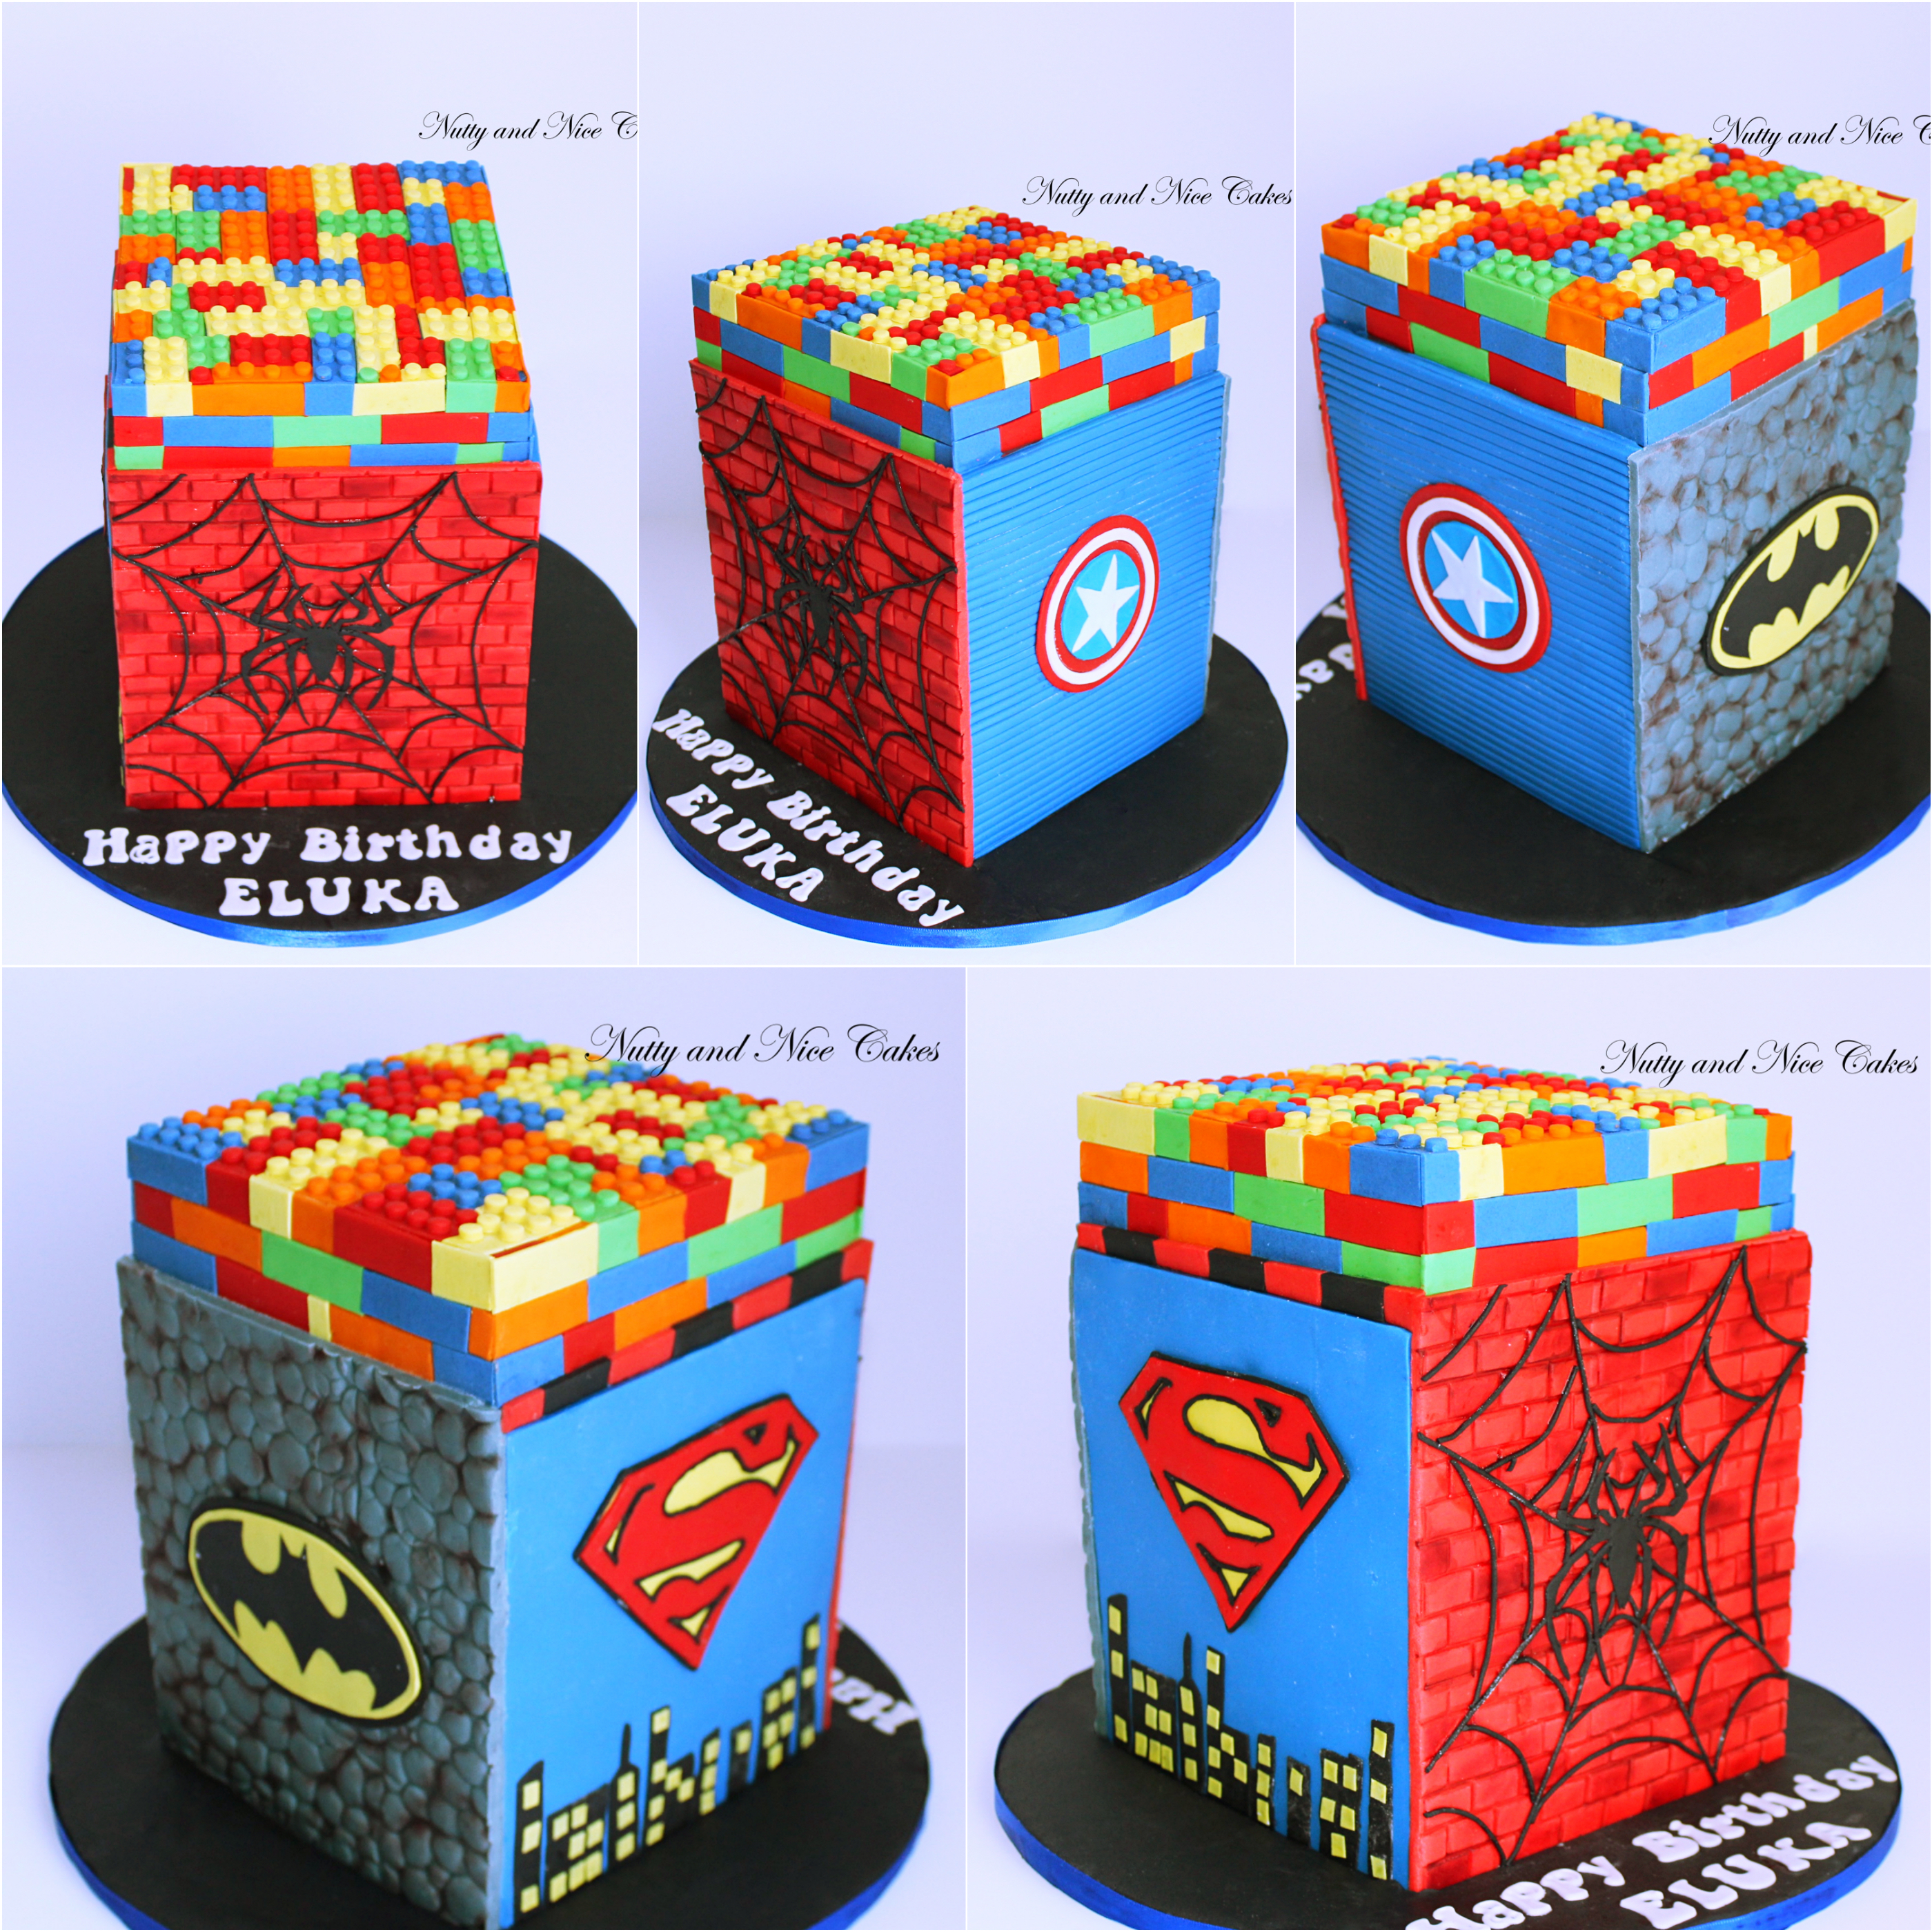 Lego Superheroes Cake4_Fotor_Collage